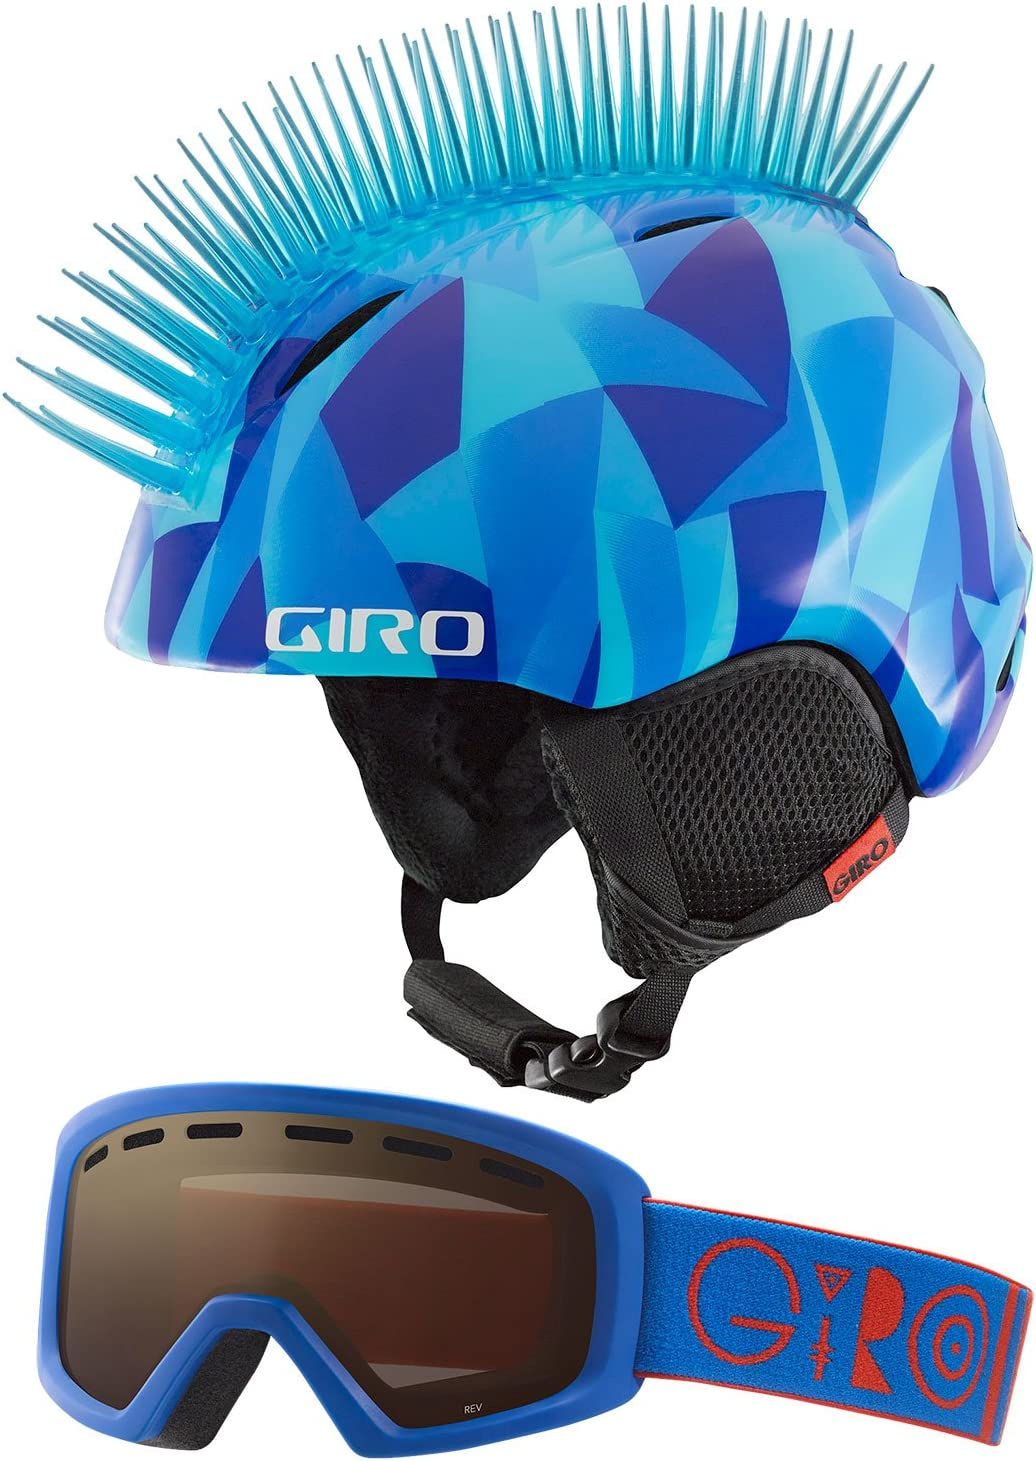 Giro Launch Combo Kids Snow Helmet w/Matching Goggles